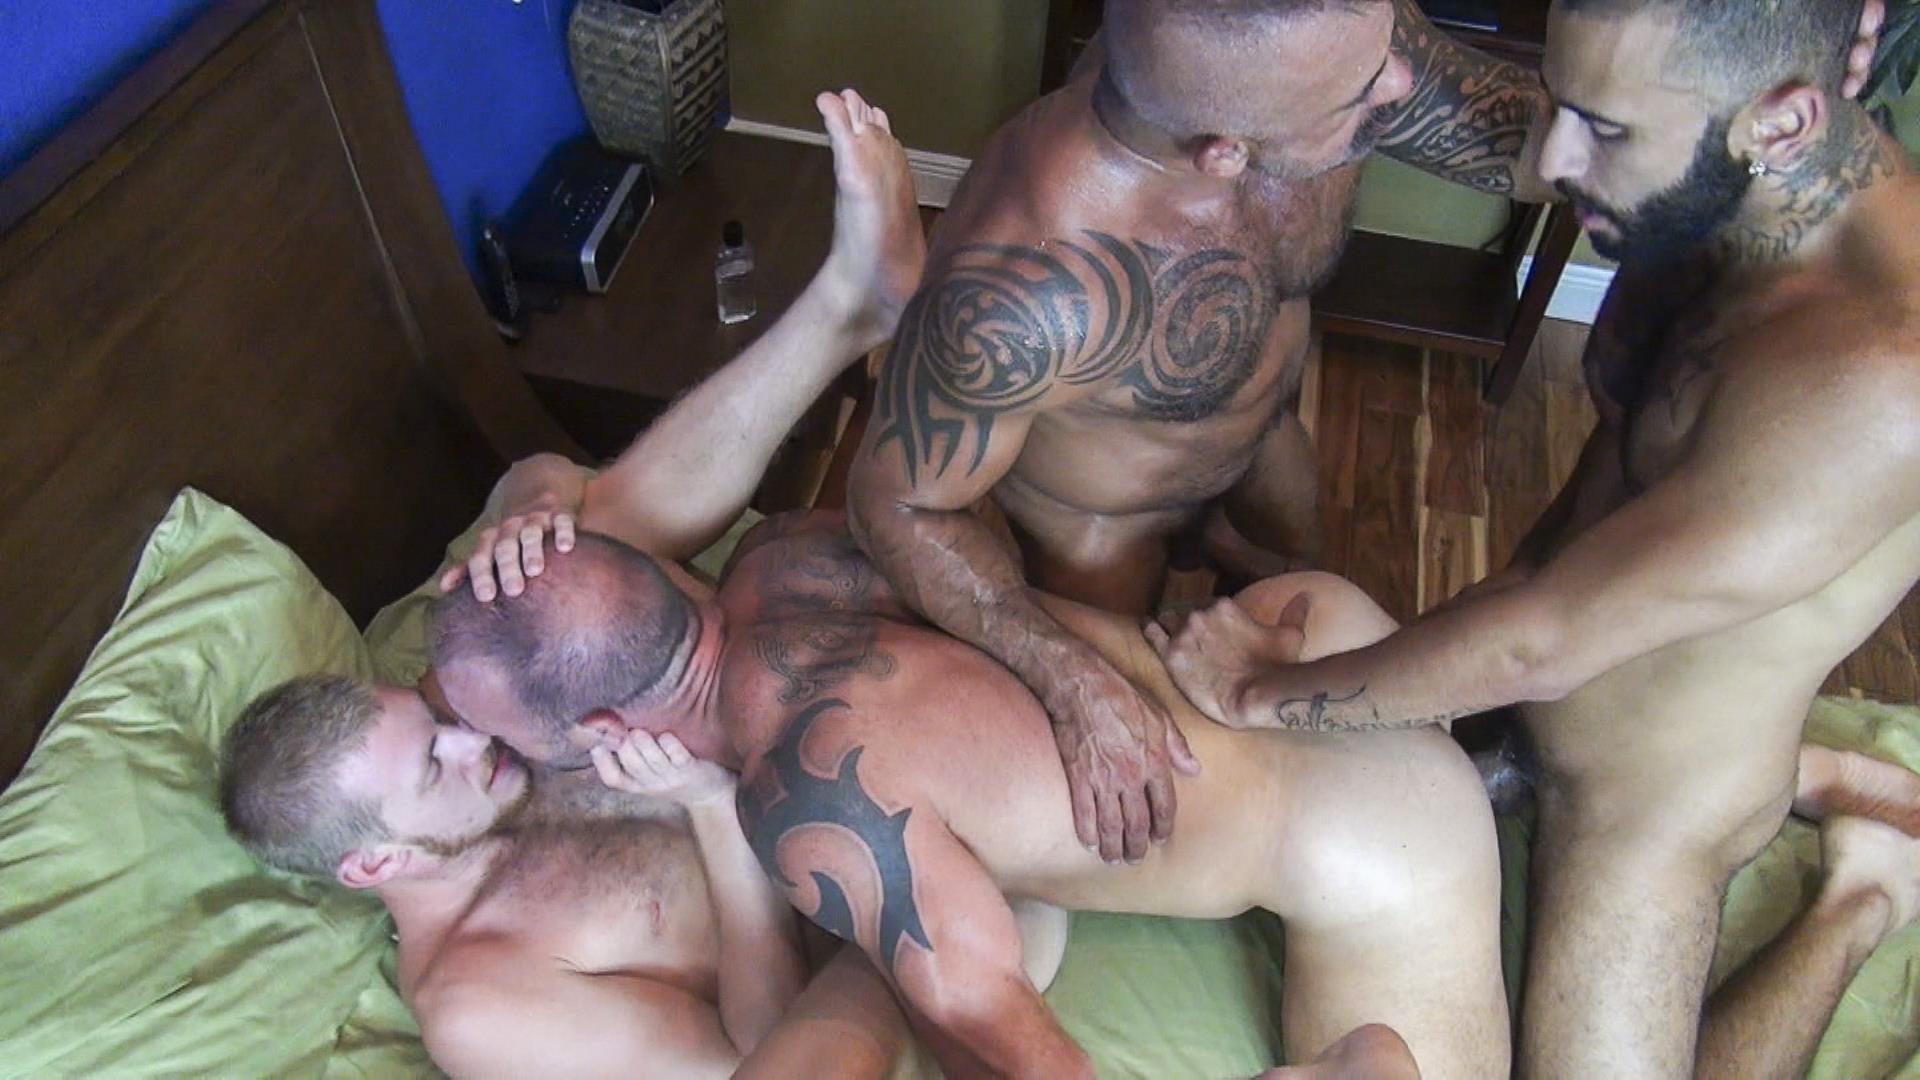 Raw Fuck Club Vic Rocco and Rikk York and Billy Warren and Job Galt Bareback Daddy Amateur Gay Porn 11 Four Hairy Muscle Daddies In A Bareback Fuck Fest Orgy